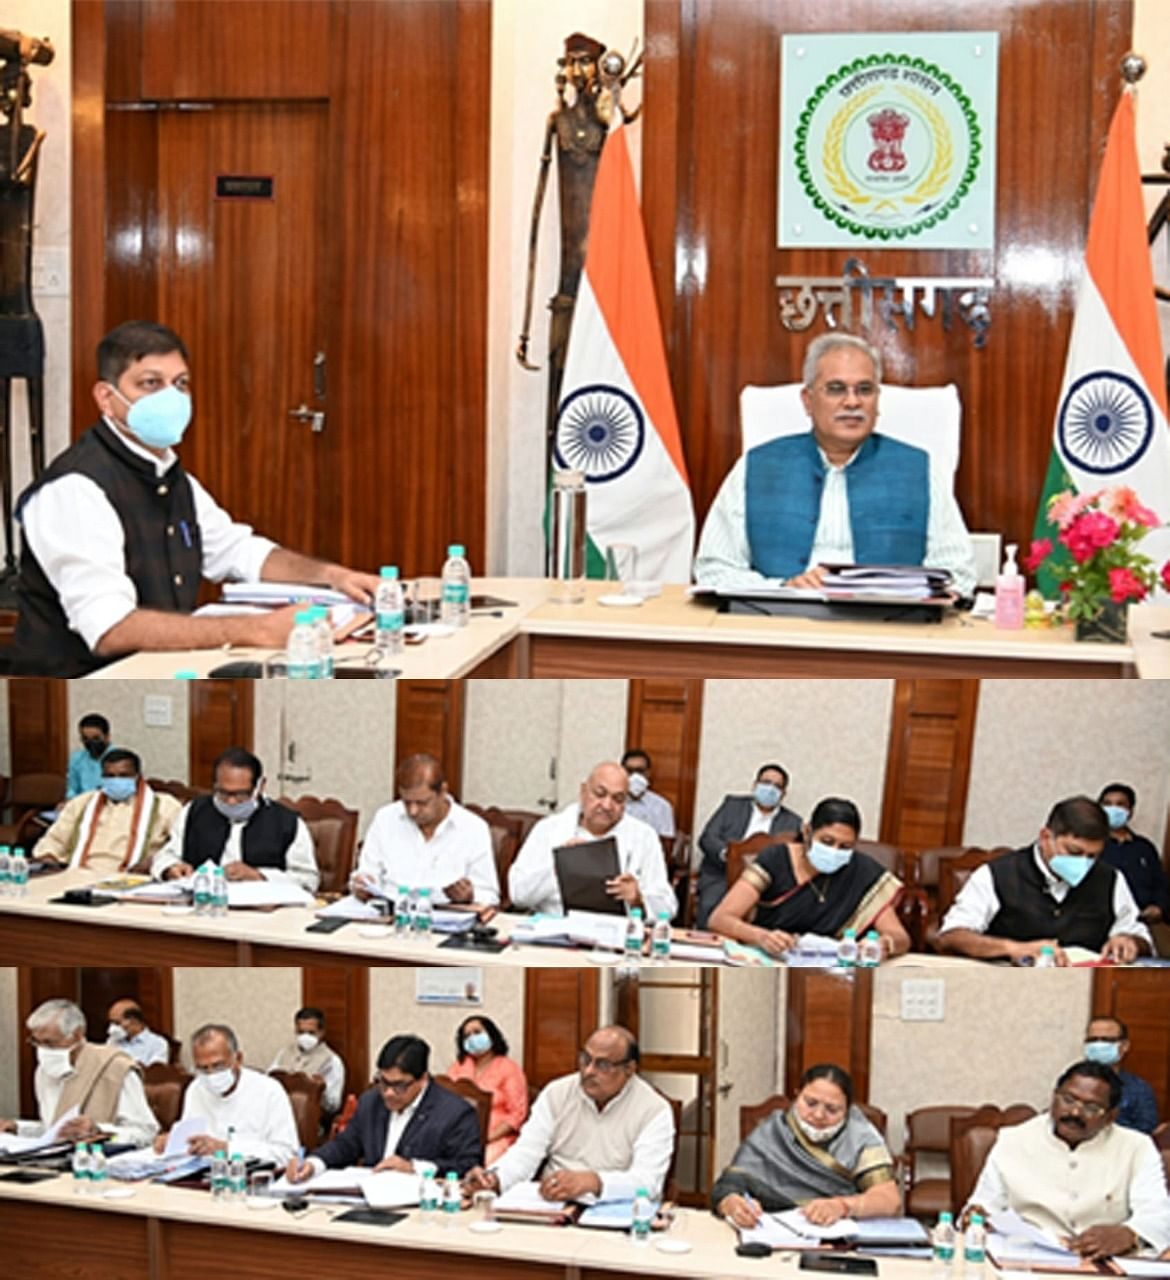 raipur-many-important-decisions-taken-in-bhupesh-council-of-ministers-meeting